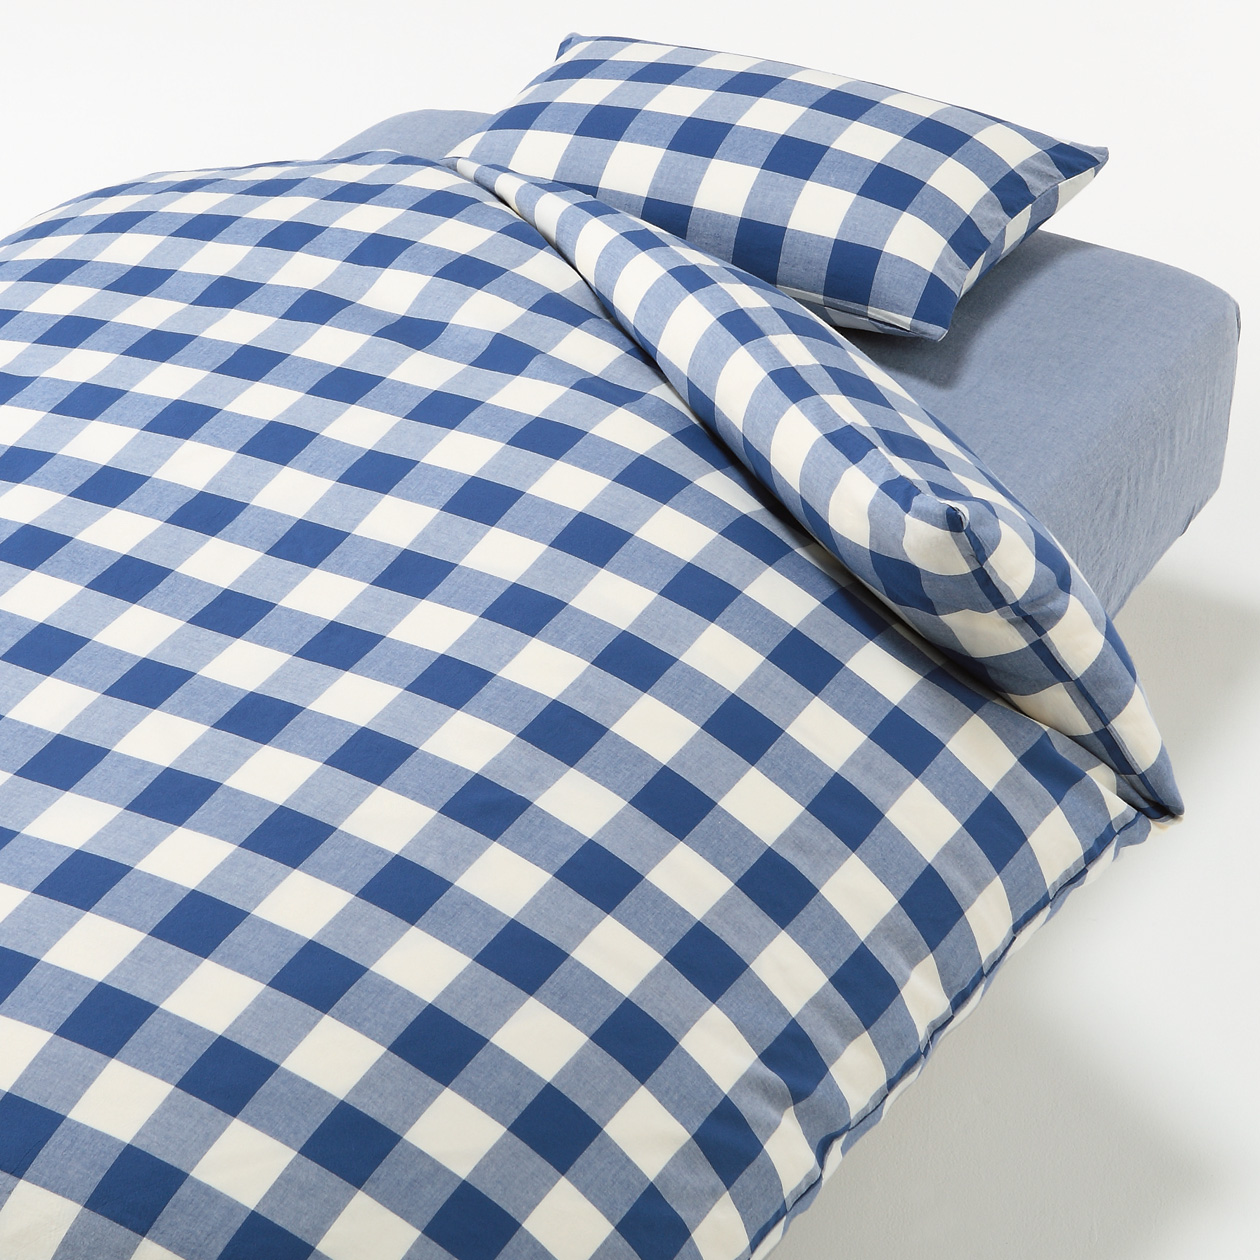 COVER SET FOR BED Q BLUE CHECK